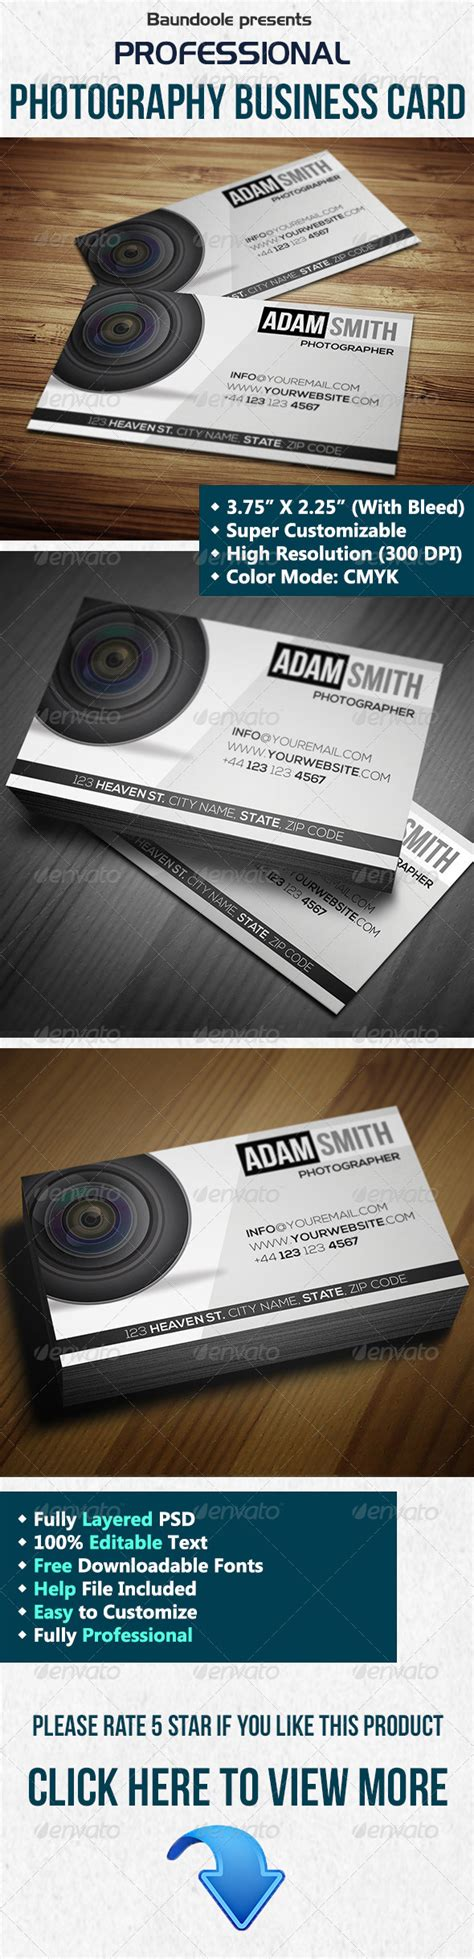 professional photographer business card templates print templates professional photography business card